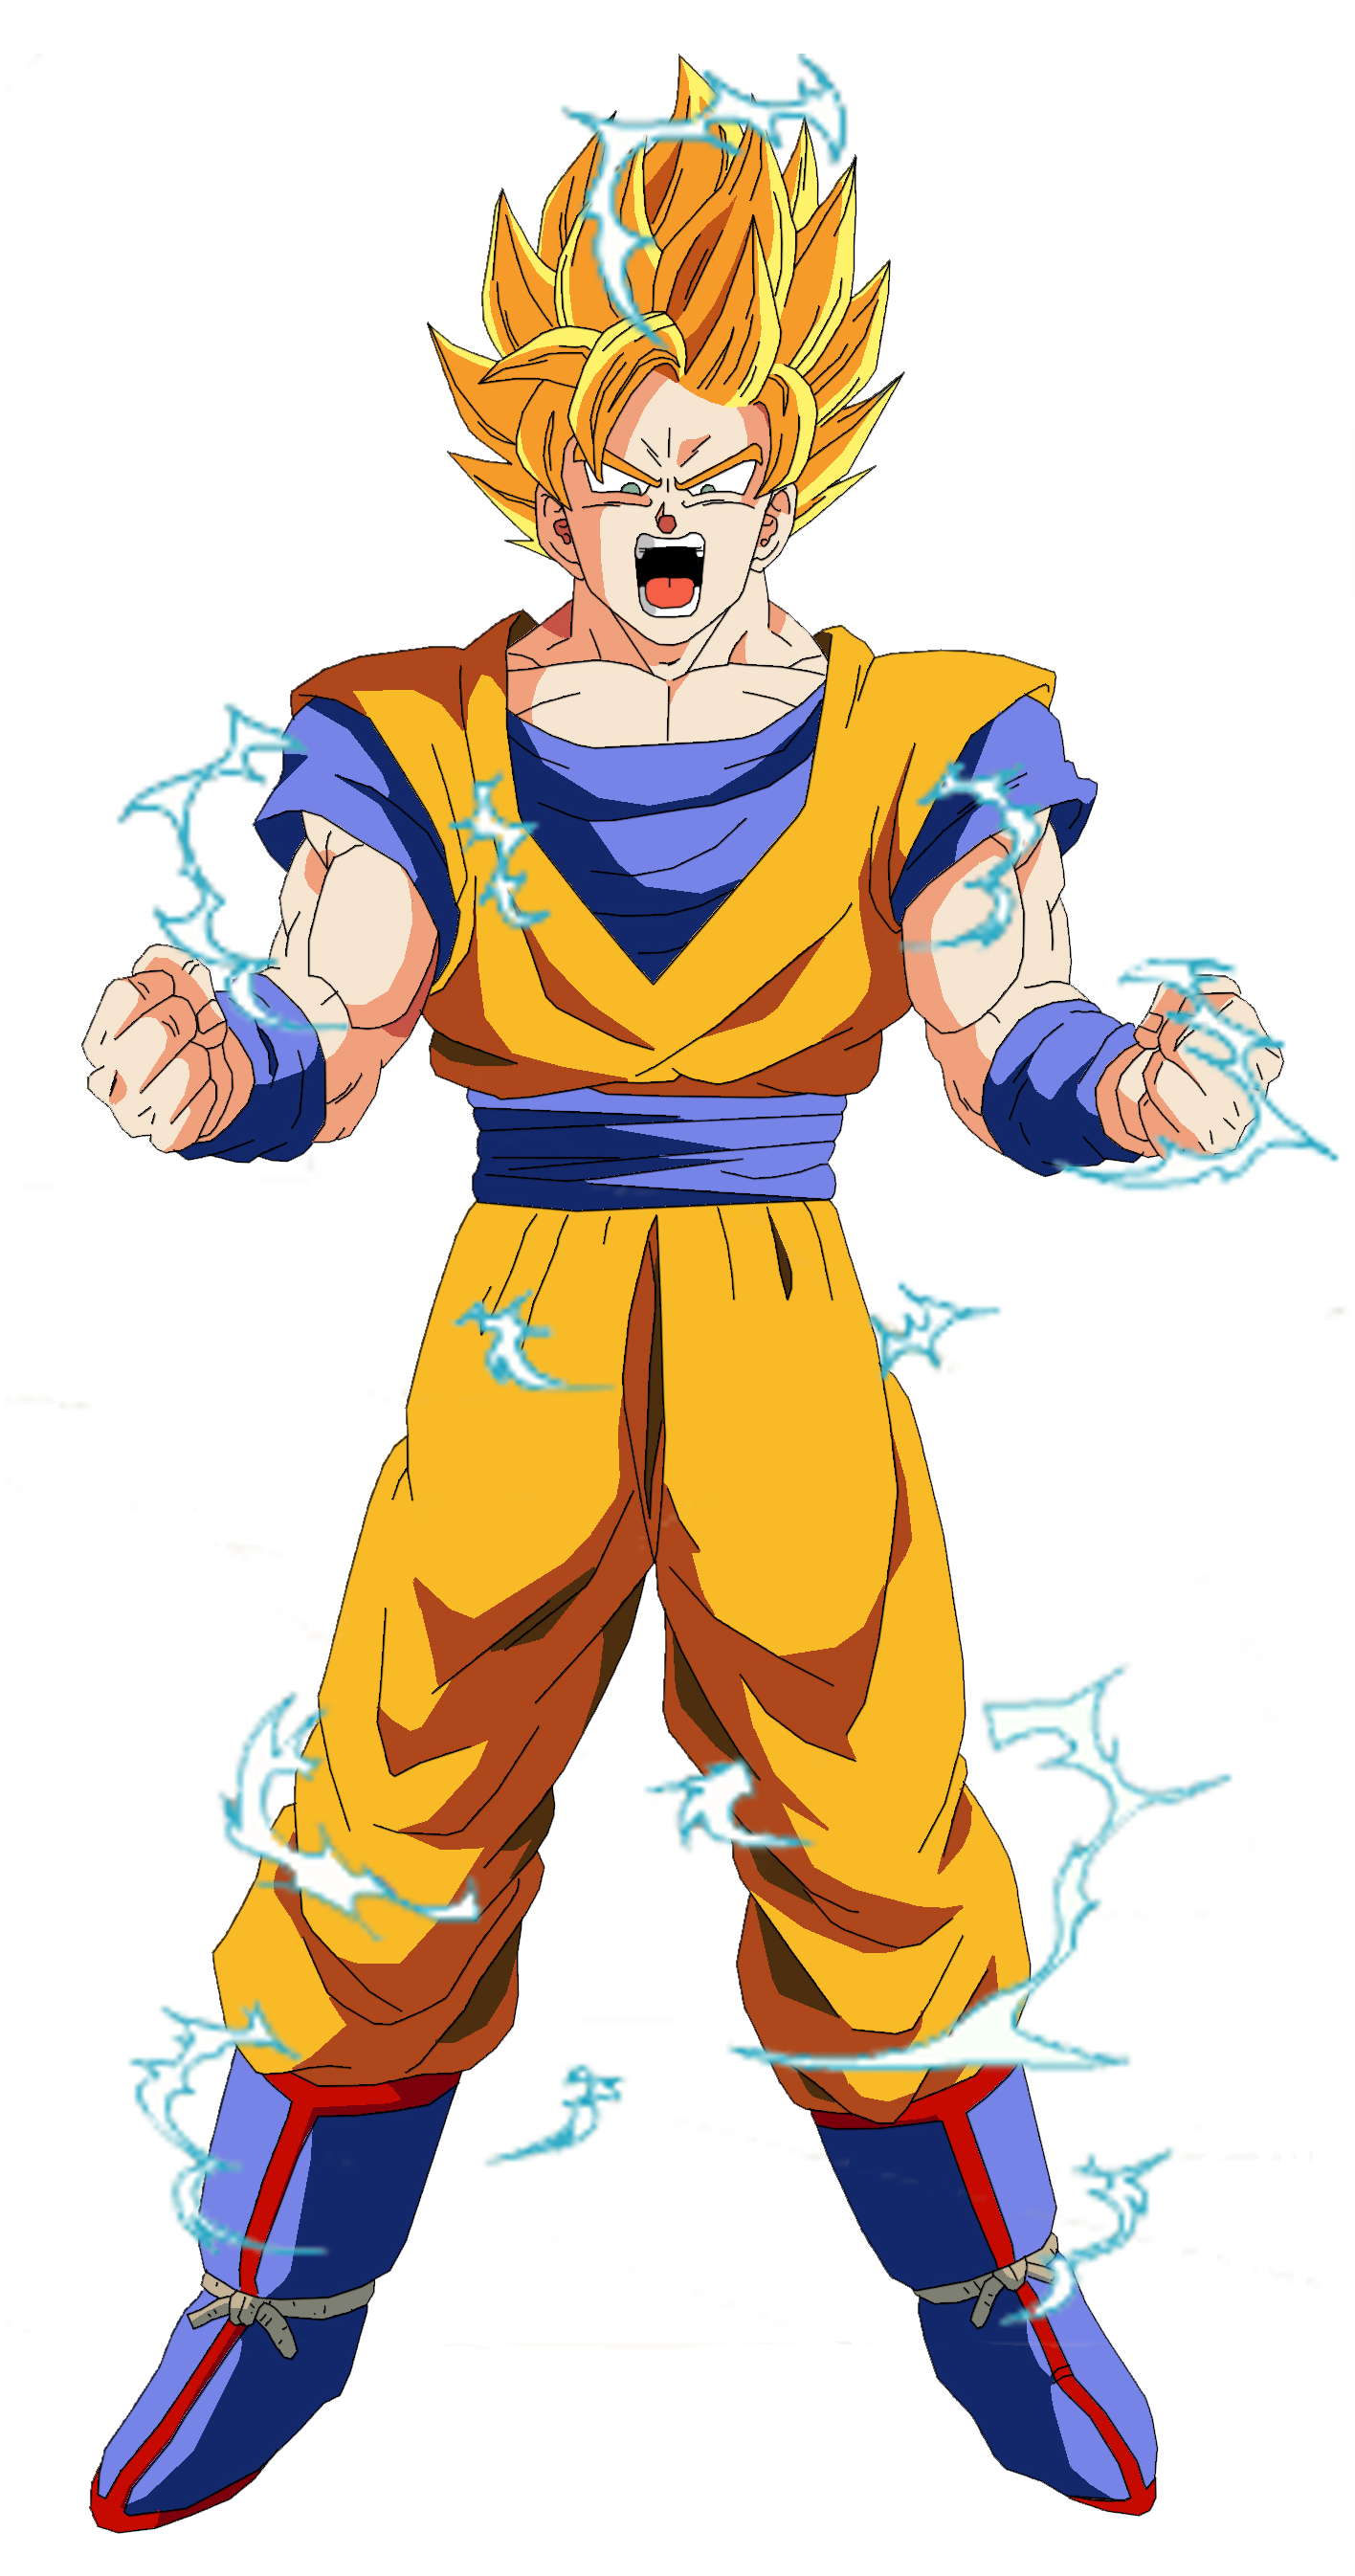 Son goku dios dragon dragon ball fanon wiki - Dragon ball z goku son ...